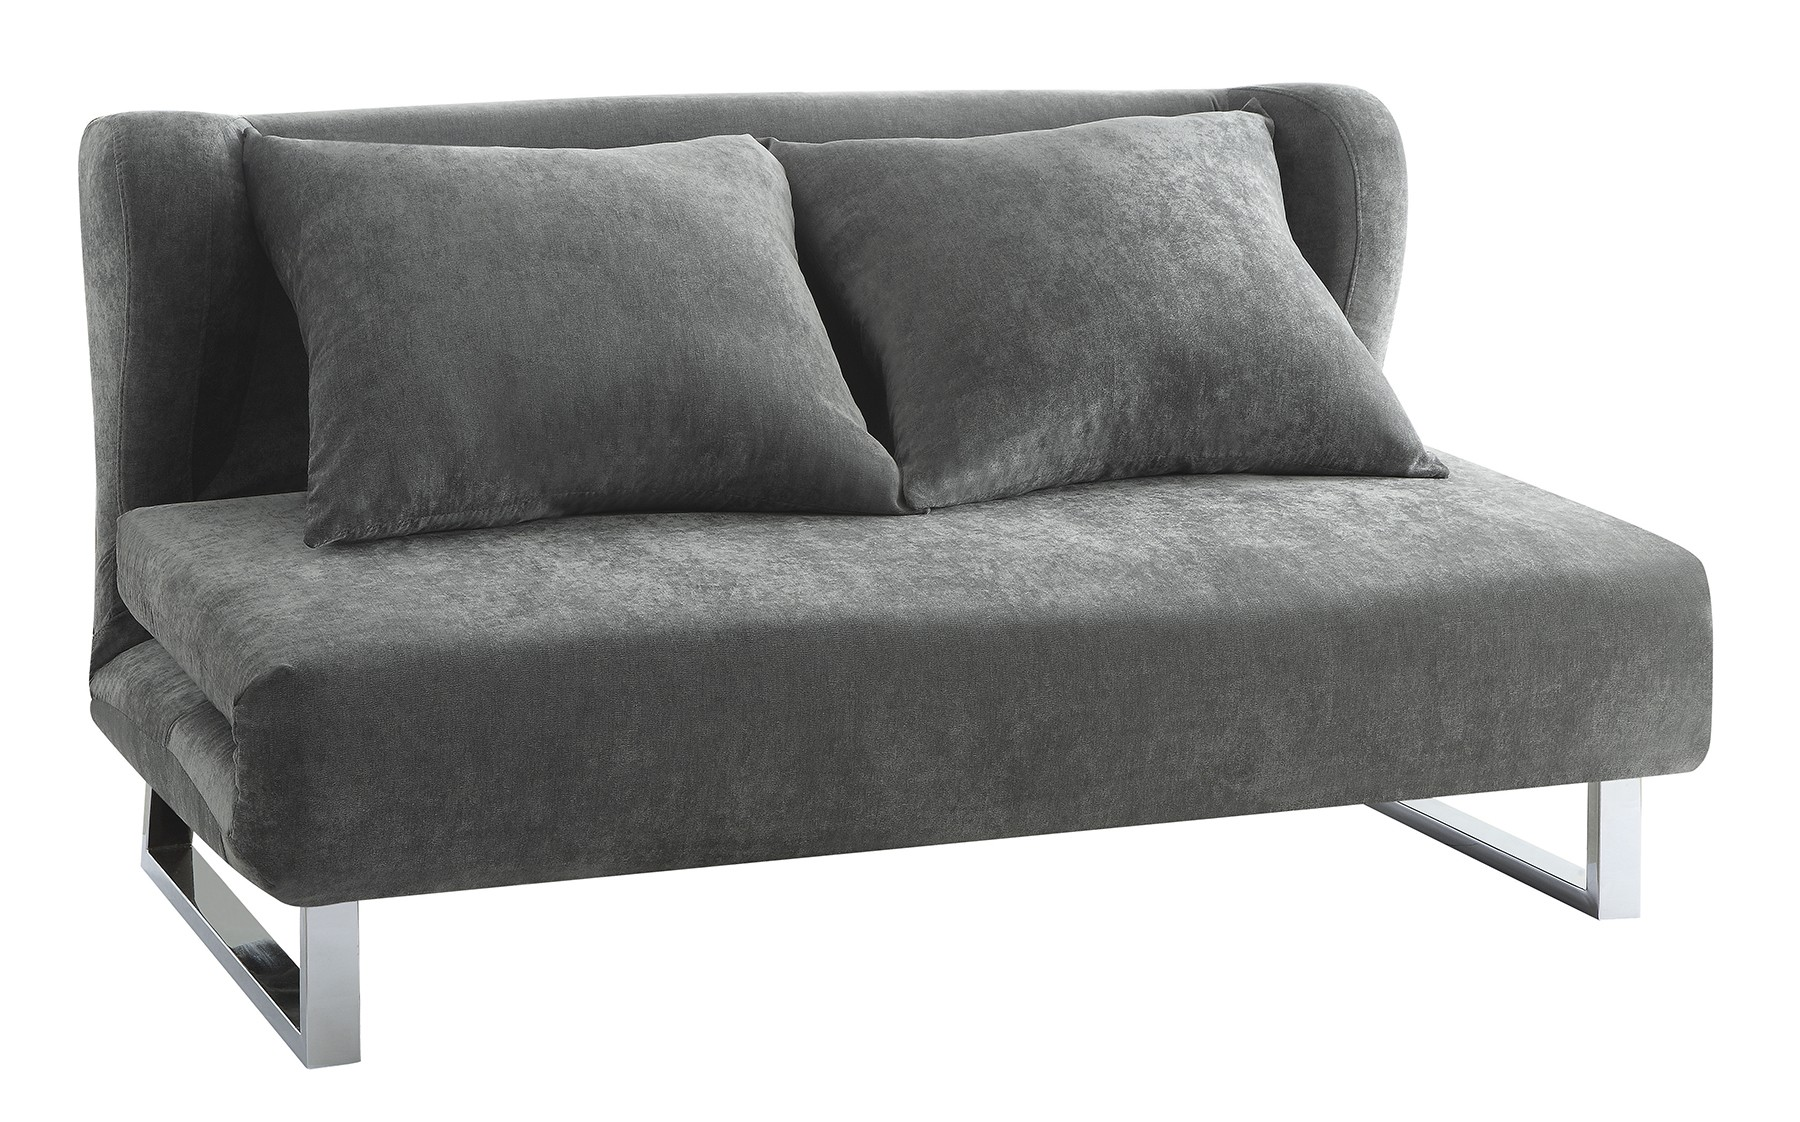 grey sofa chaise lounge most comfortable sleepers contemporary bed converts from to